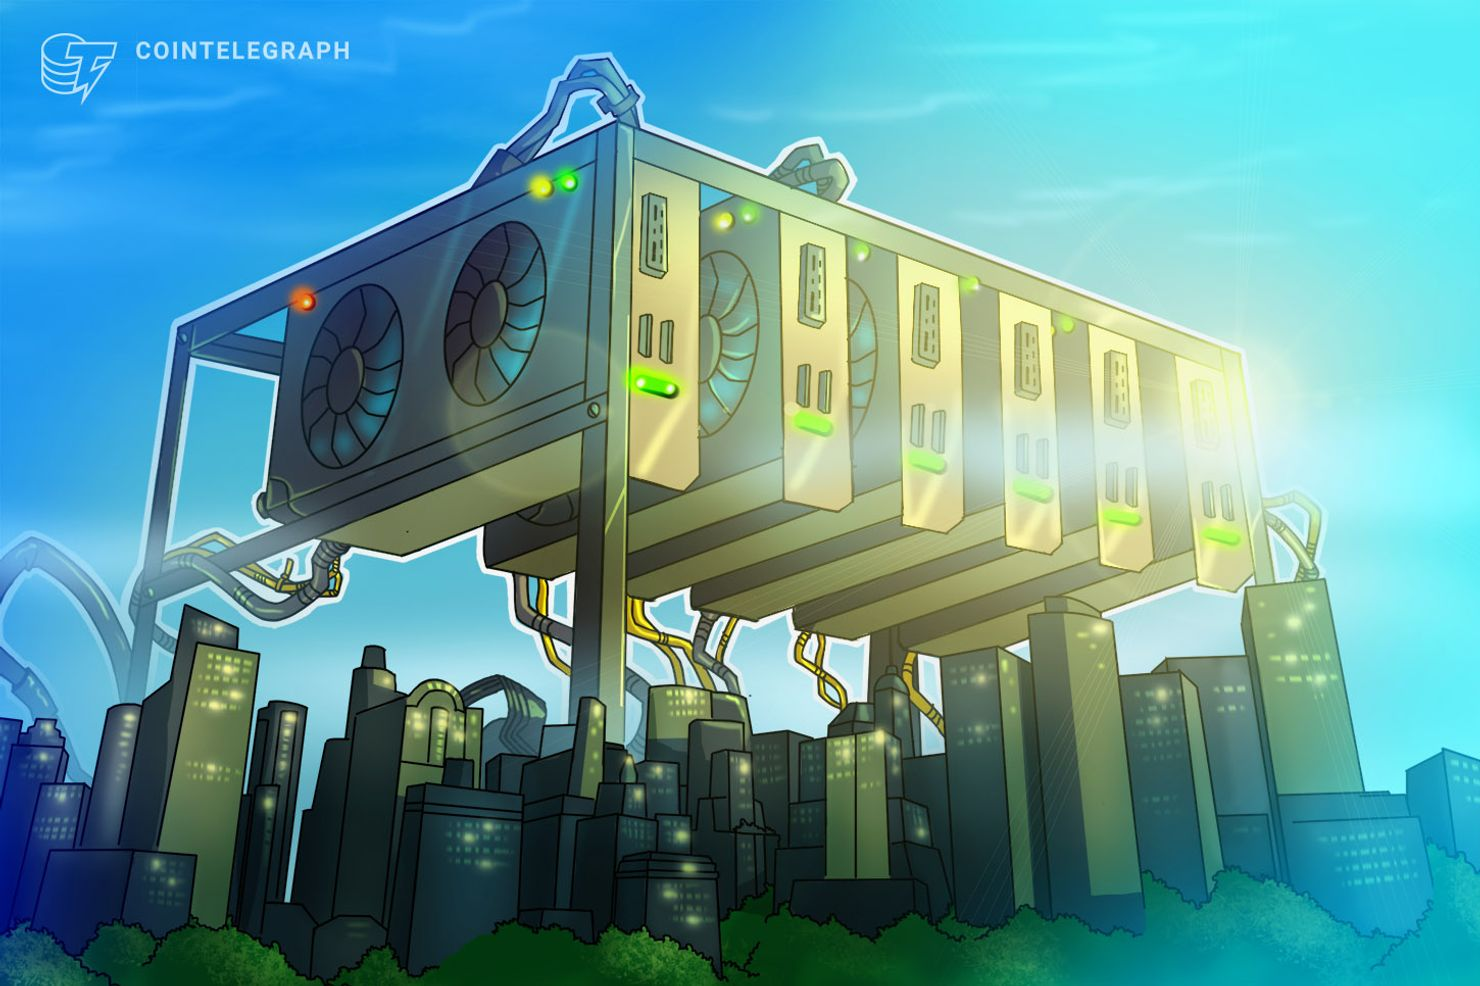 Best Coins To Mine 2020 Bitmain Eyes 2020 Bitcoin Block Halving as Pivotal Moment for